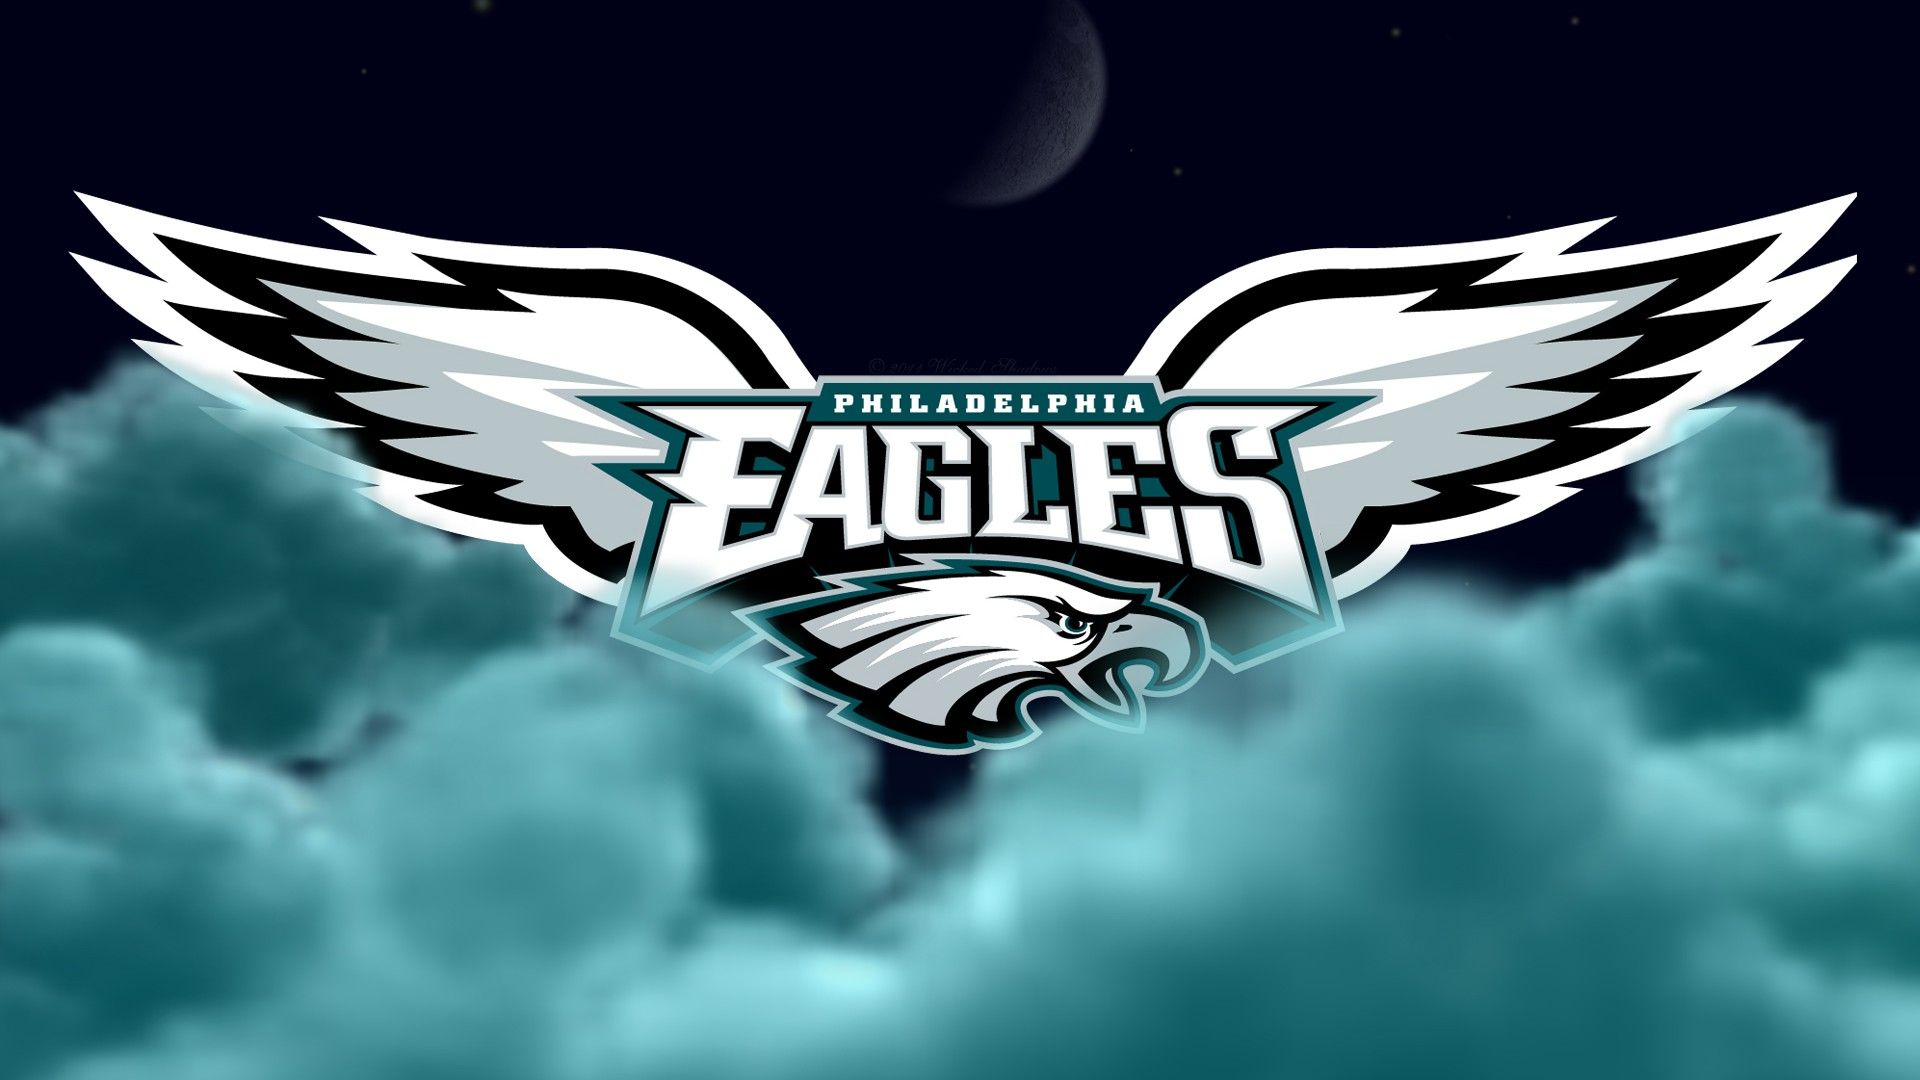 Philadelphia Eagles Hd Wallpapers With Images Philadelphia Eagles Logo Philadelphia Eagles Wallpaper Philadelphia Eagles